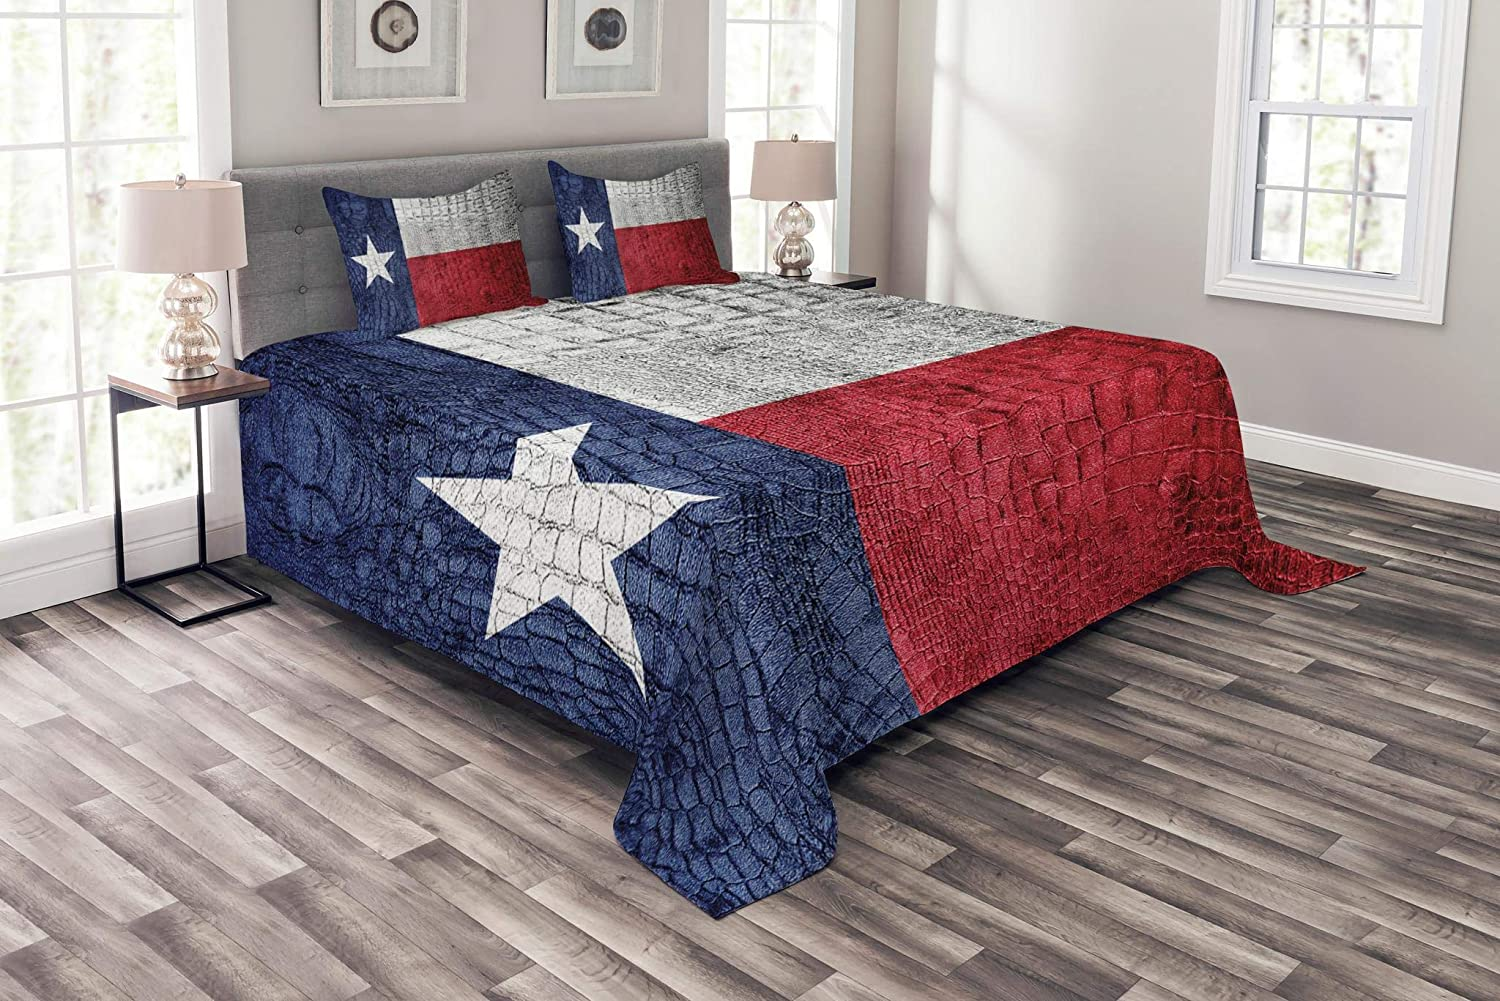 Lunarable Western Bedspread, Texas State Flag Painted on Crocodile Snake Skin Patriotic Emblem Image, Decorative Quilted 3 Piece Coverlet Set with 2 Pillow Shams, King Size, White Blue